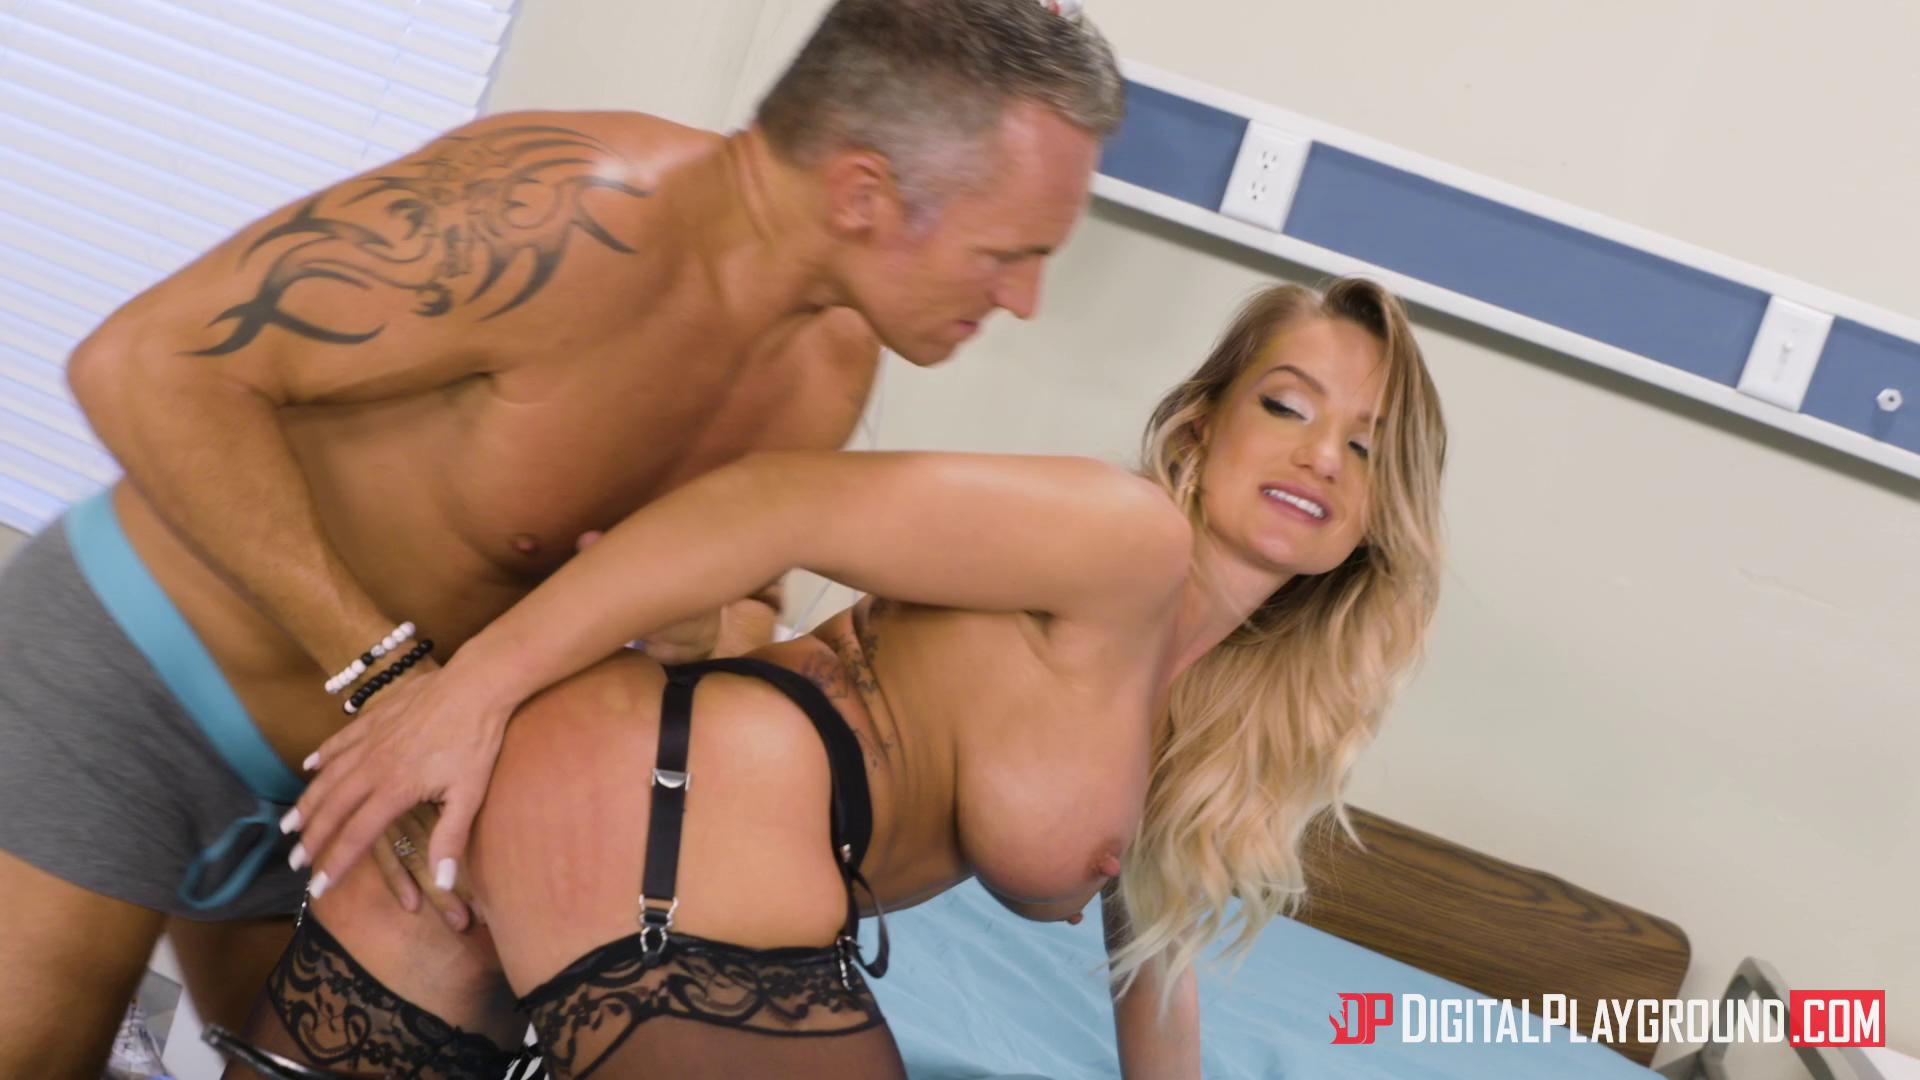 DigitalPlayground – Cali Carter Boss Bitches Episode 2